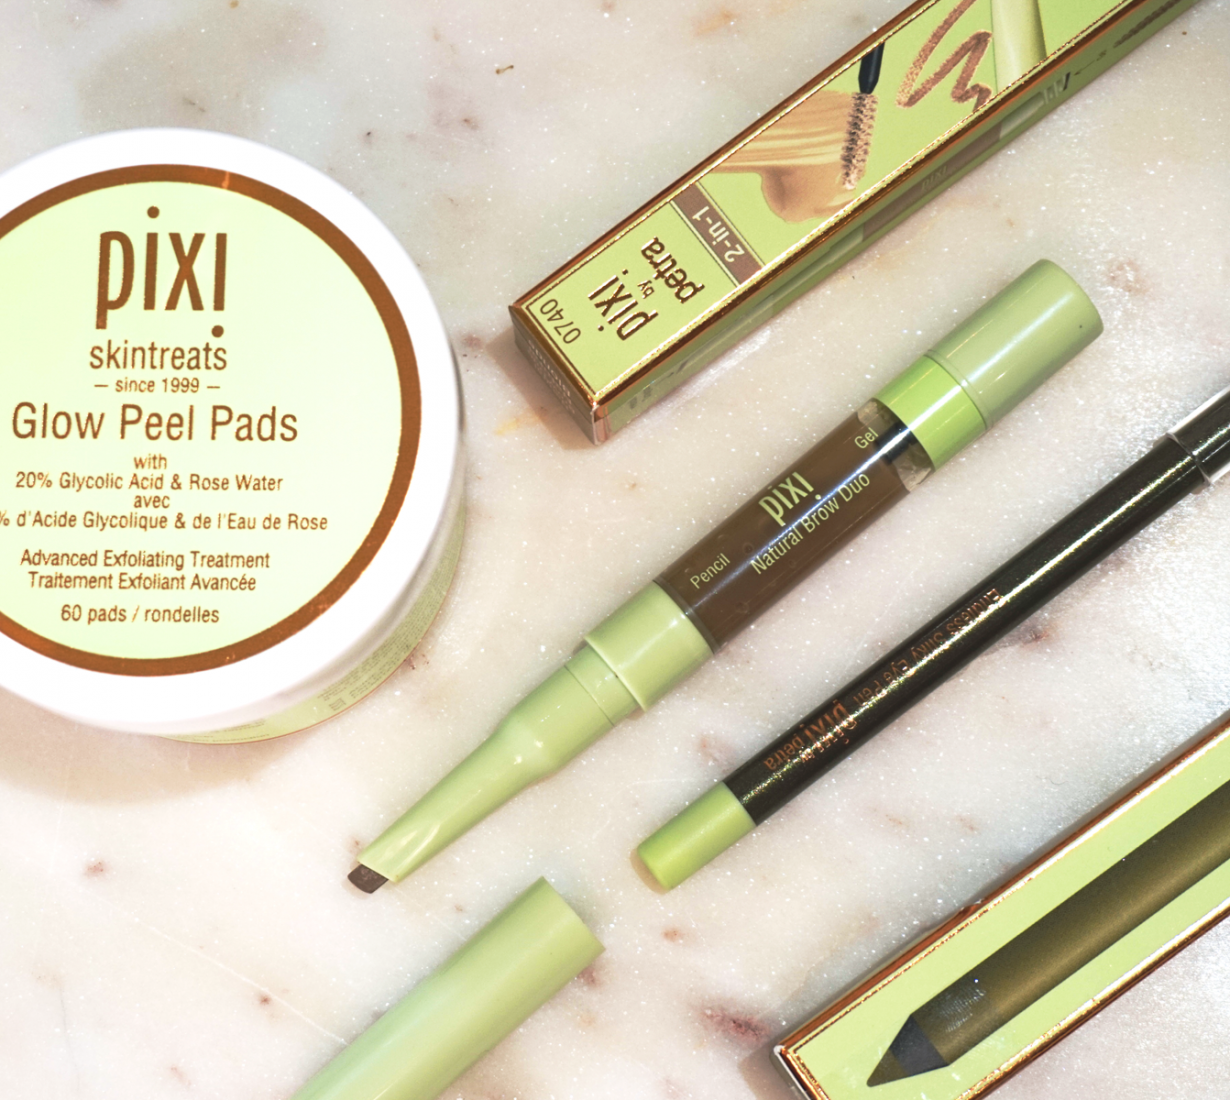 Trying out Pixi Products